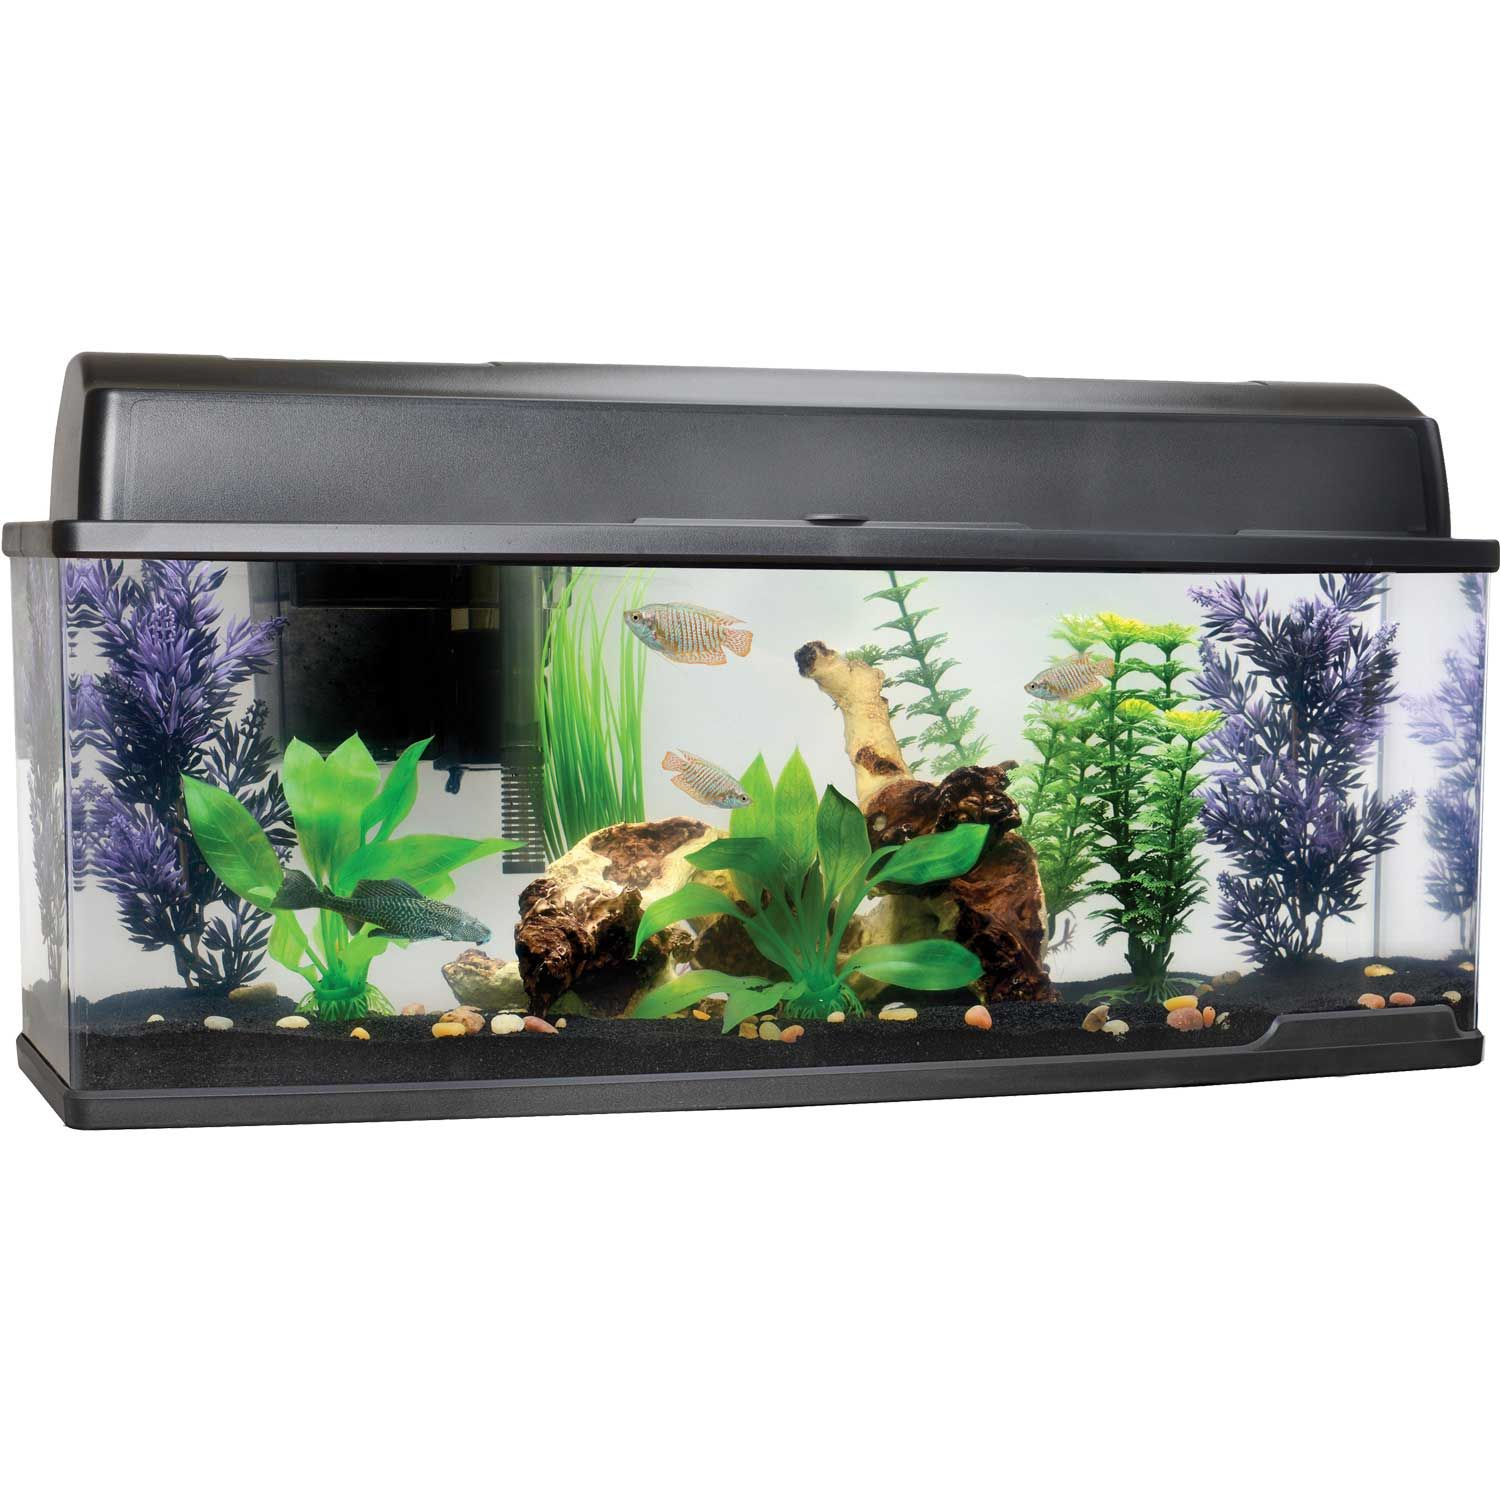 Fish for aquarium online - Product Description Petco Bookshelf Freshwater Fish Aquarium Find This Office Fish Tank And Home Aquarium Online Today With Its Slim And Sleek Design The